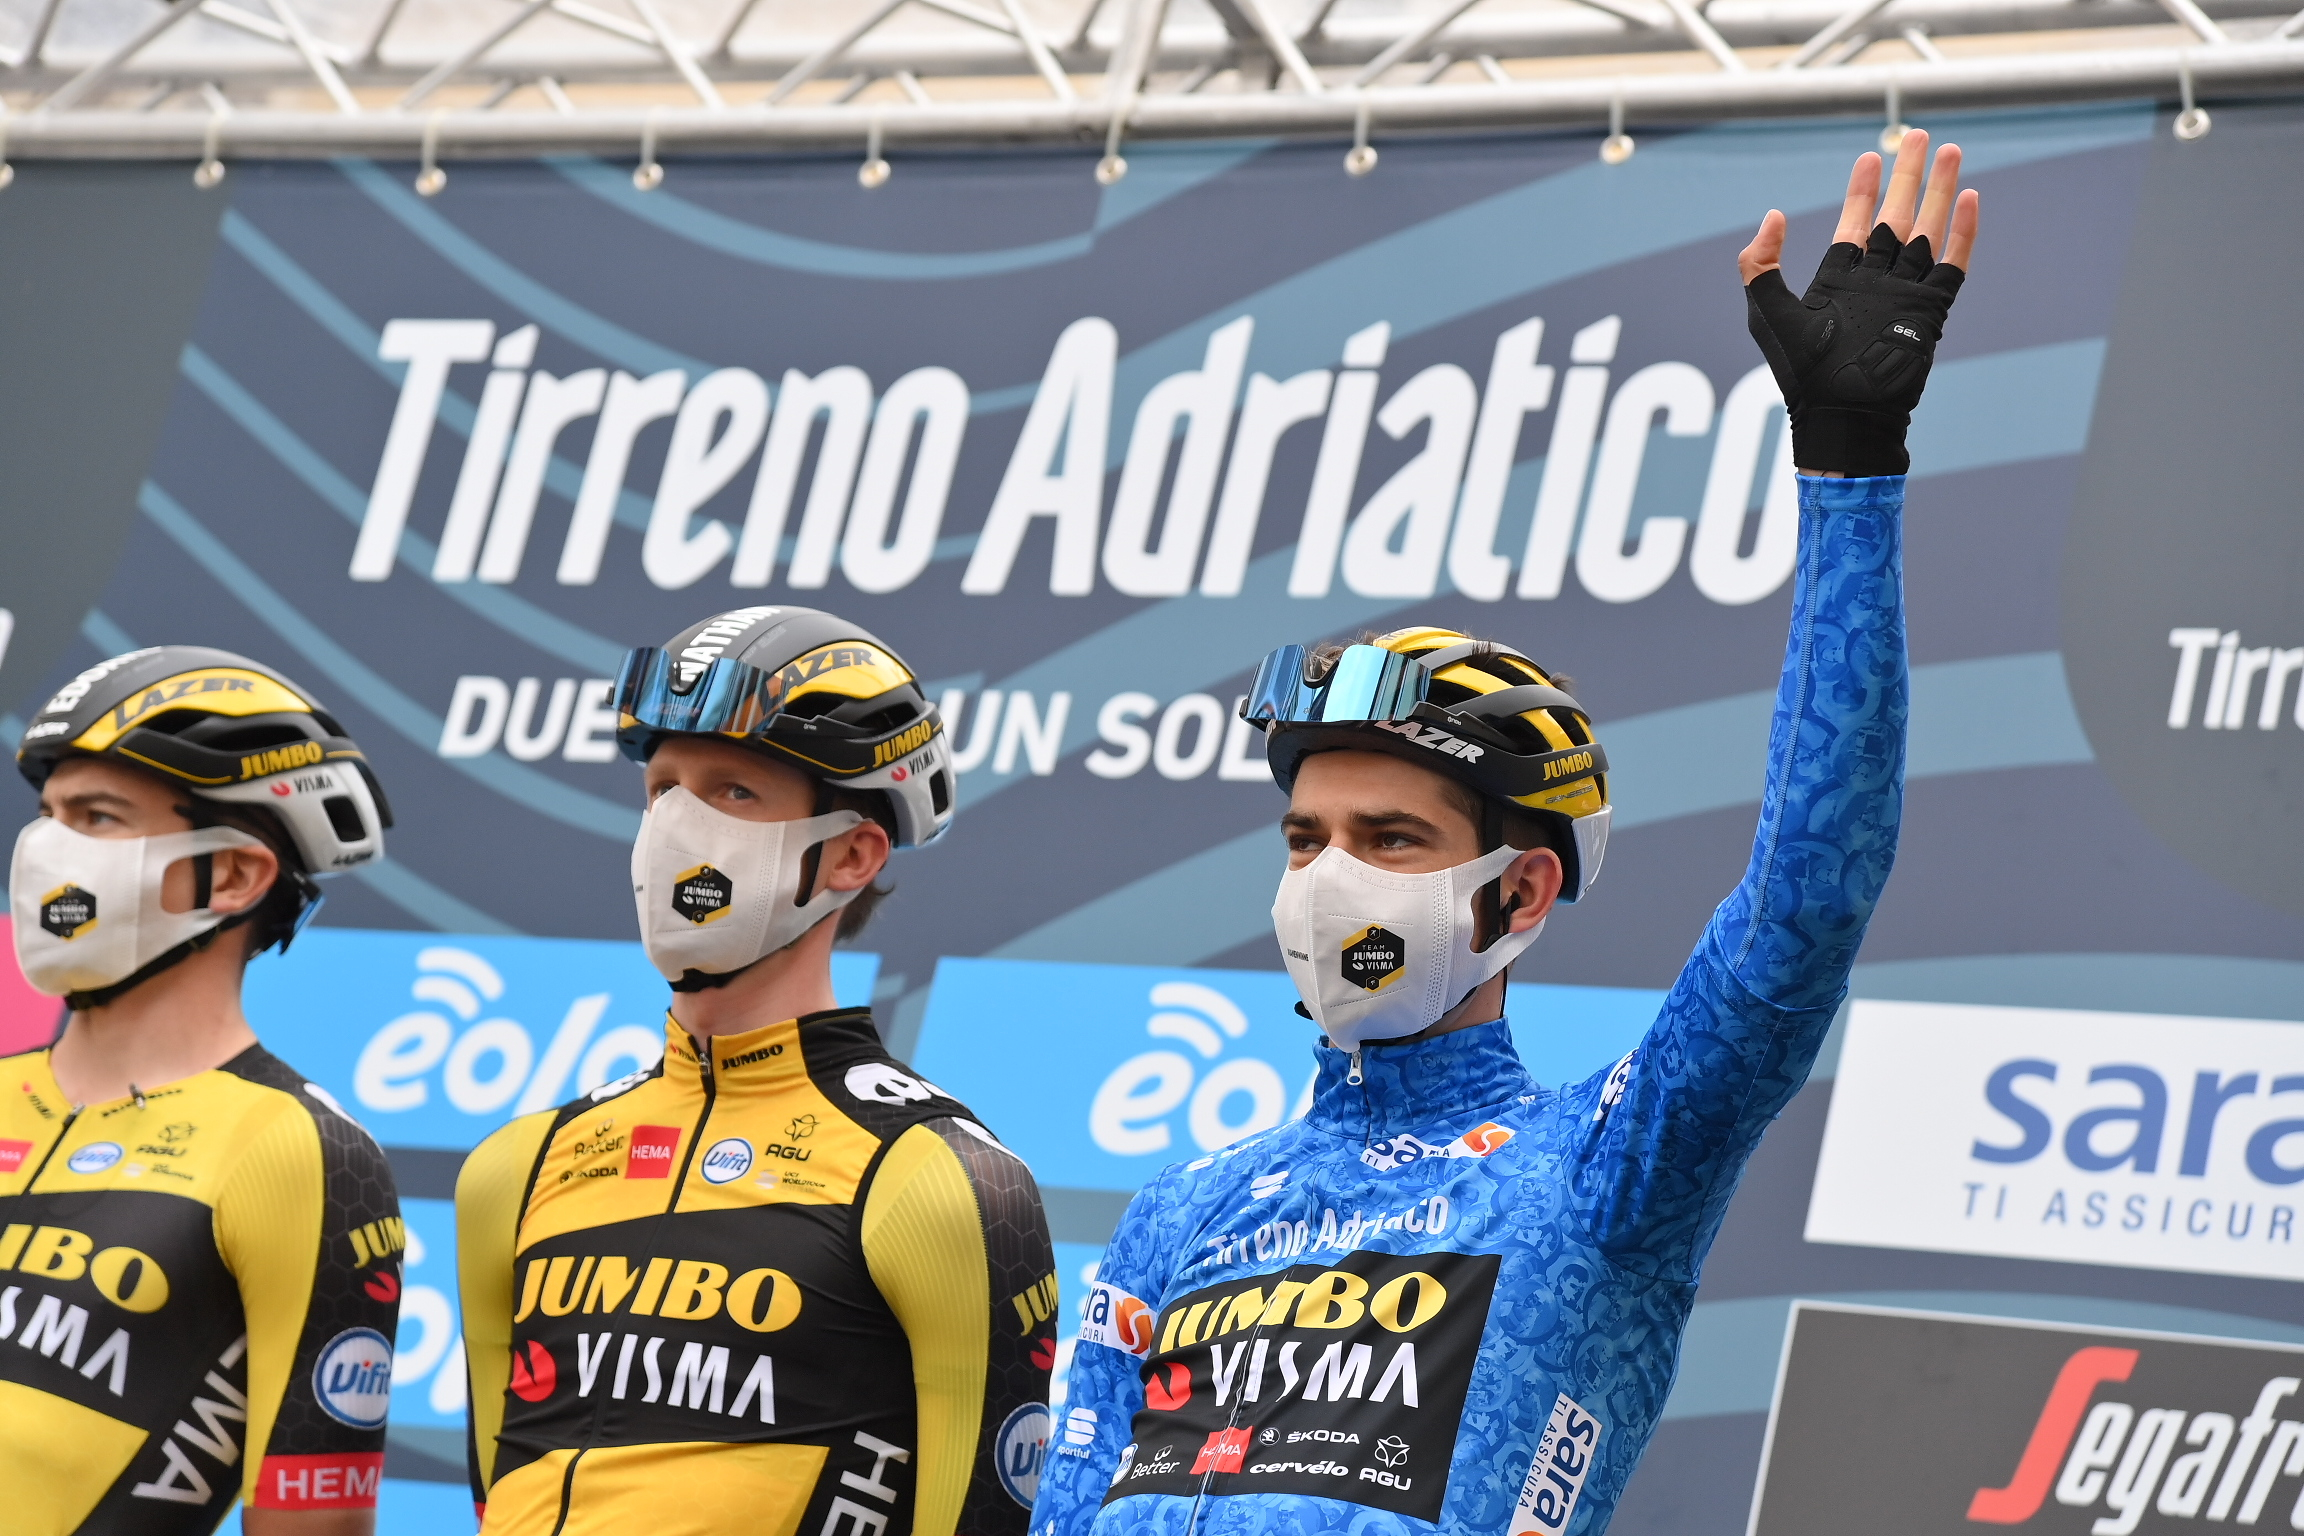 Wout Van Aert in the blue Tirreno-Adriatico leader's jersey